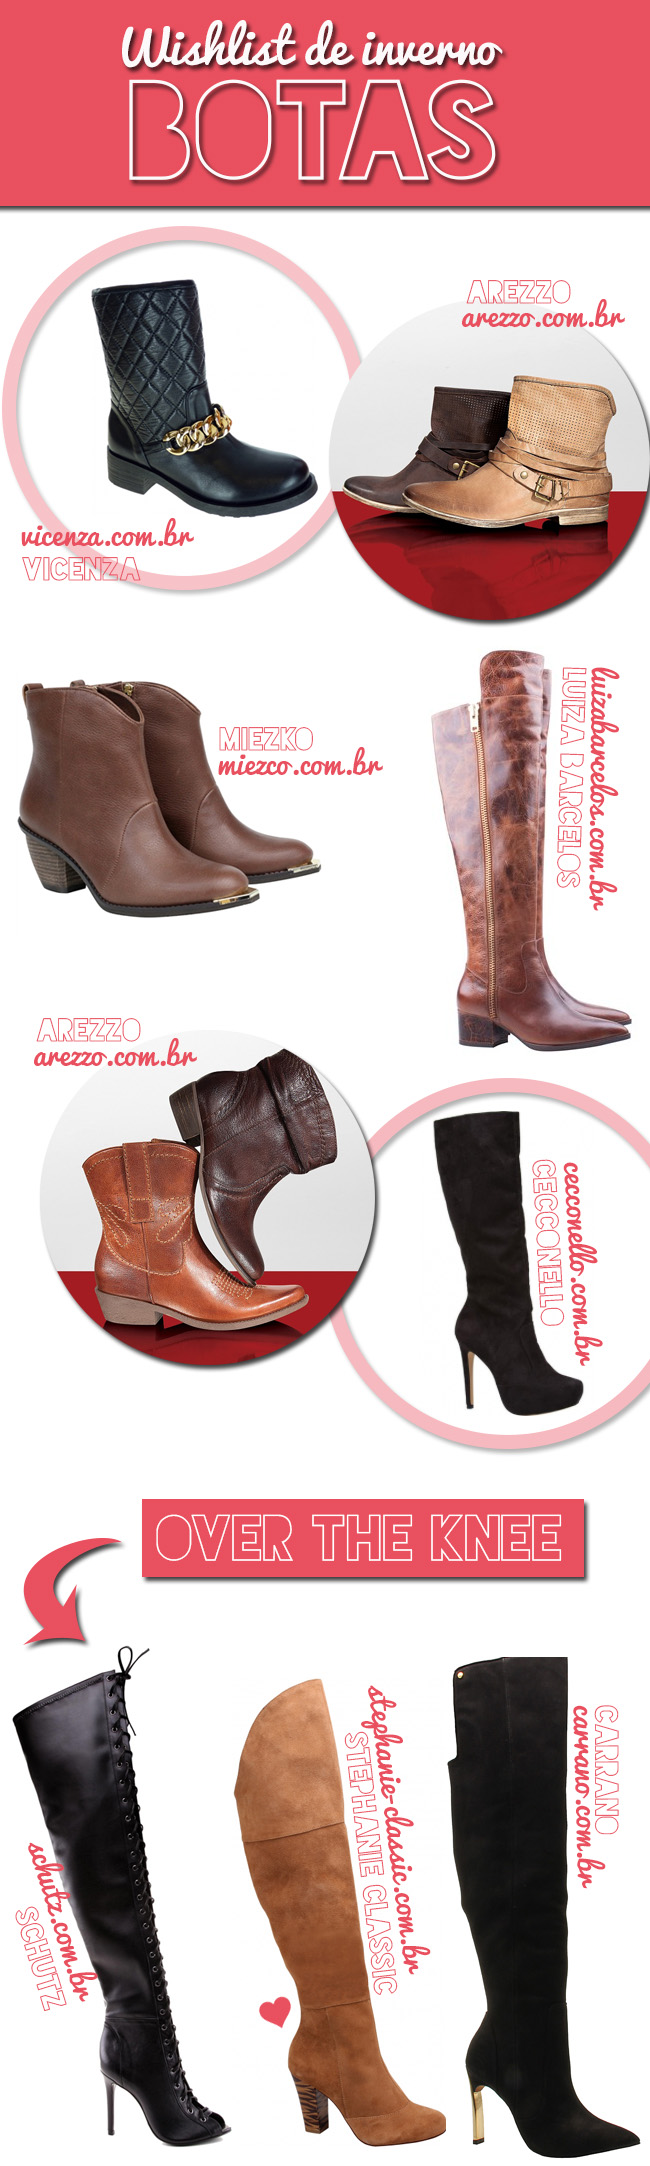 botas tendencias 2014